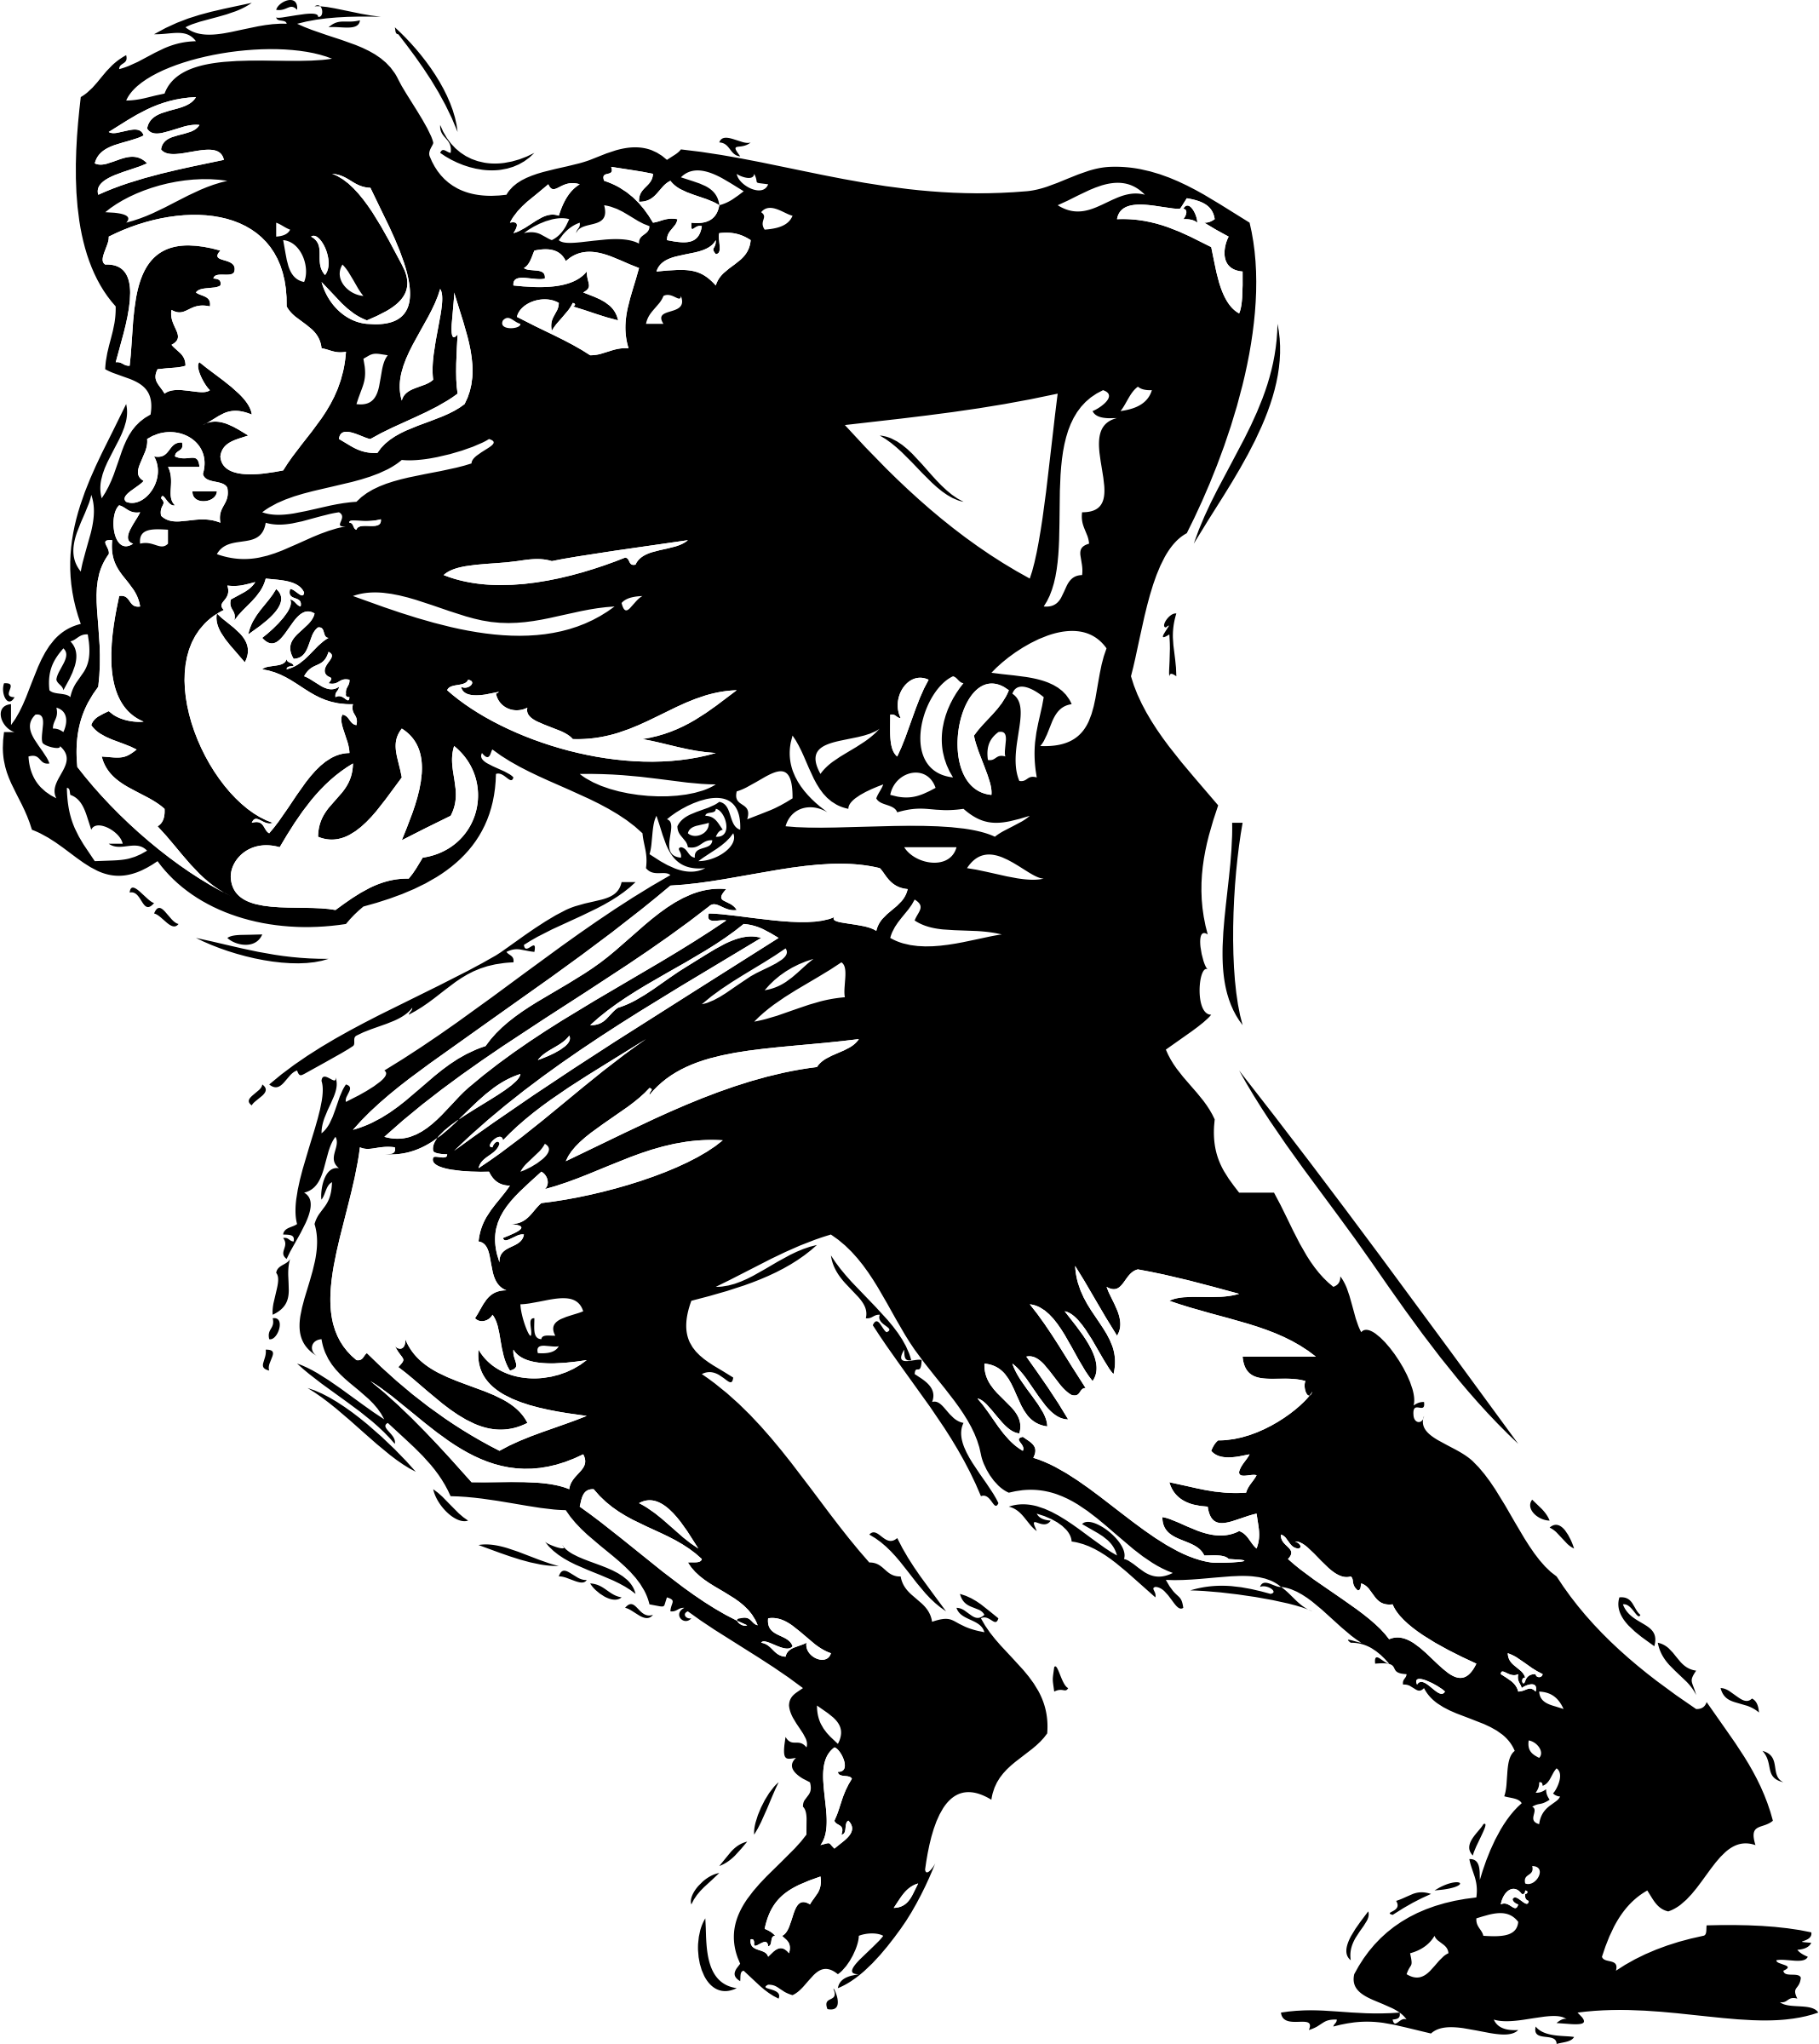 Old time big image. Muscle clipart football player